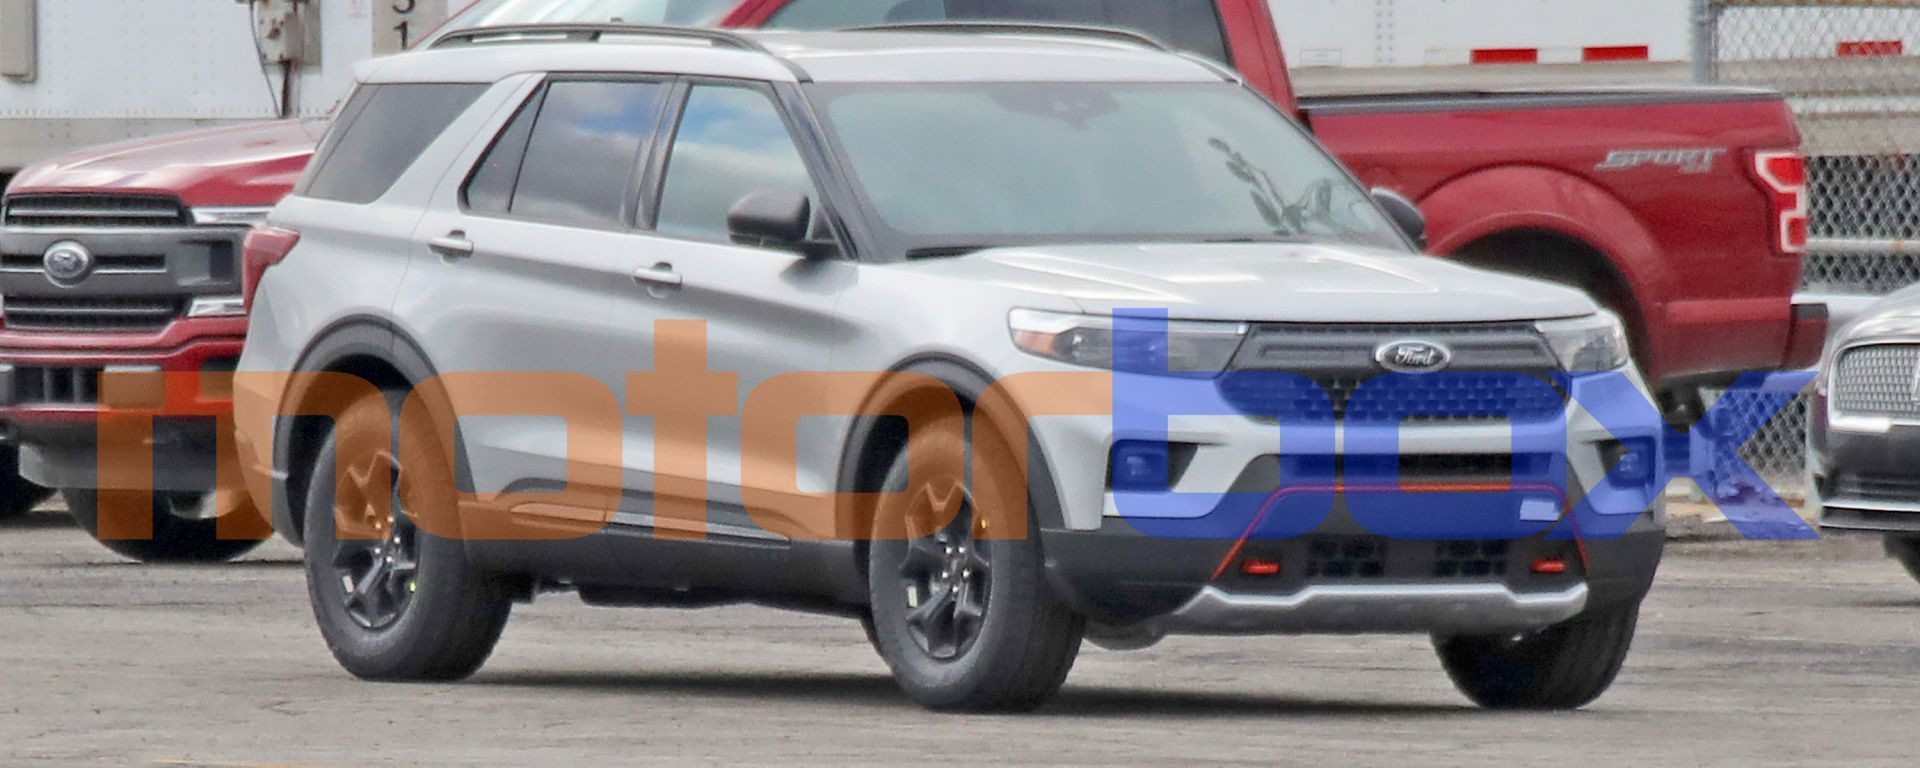 Ford Explorer Timberline, le foto spia